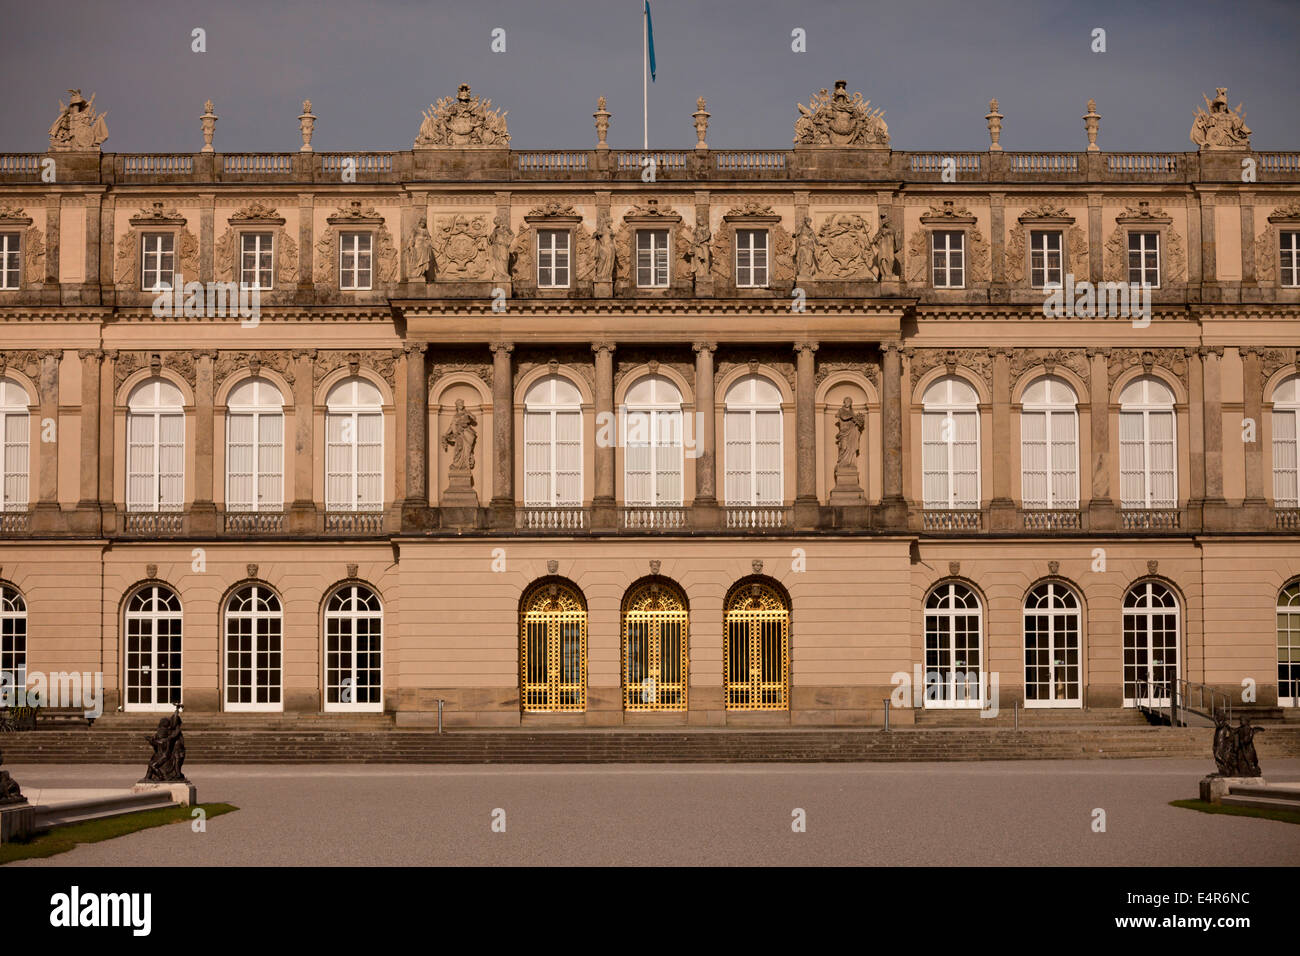 Herrenchiemsee palace on the island Herreninsel in lake Chiemsee, Chiemgau, Bavaria, Germany, Europe - Stock Image